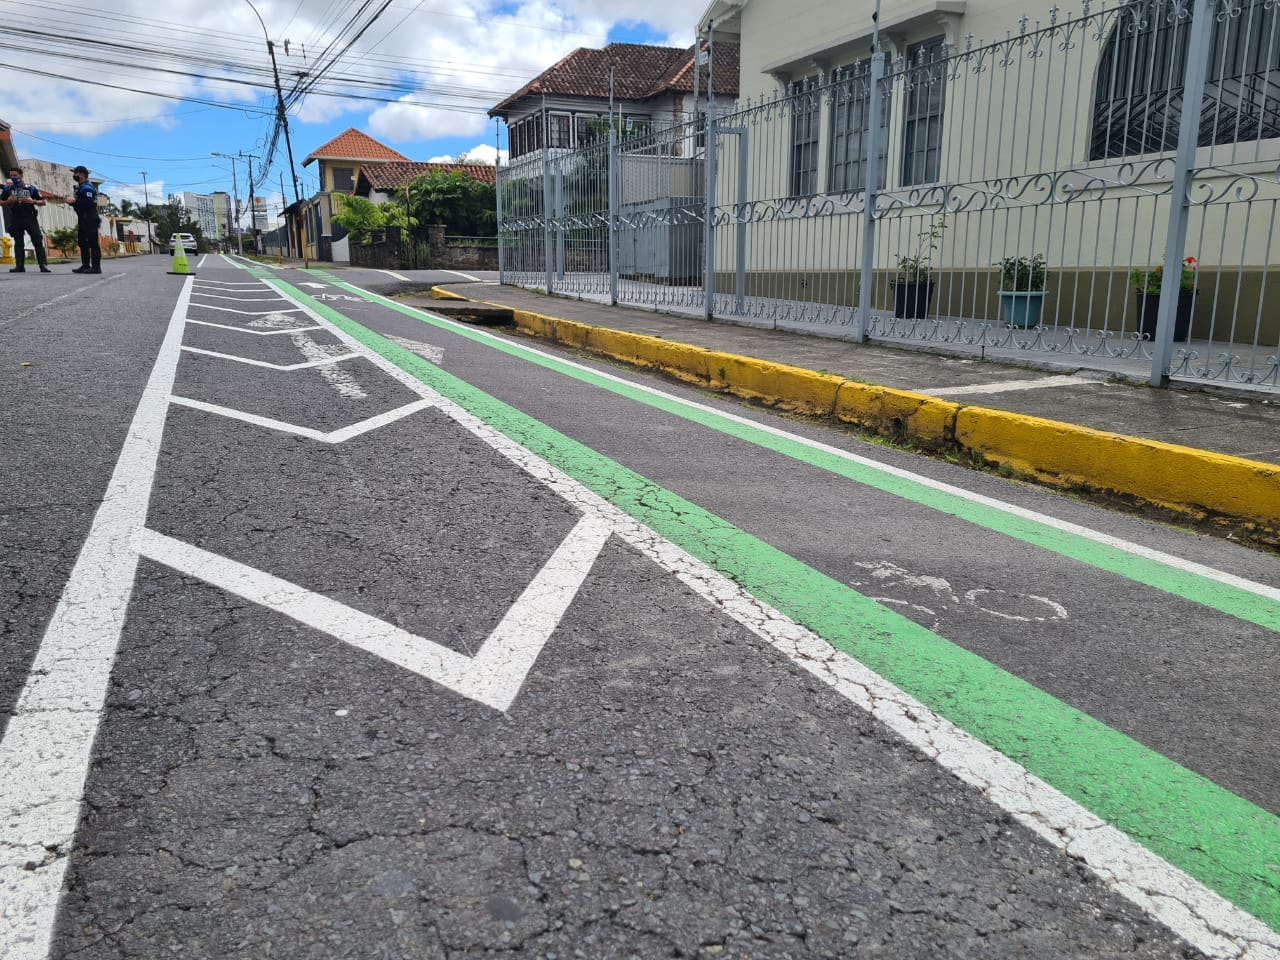 Cyclists will have space to commute between the cantons of Montes de Oca and Curridabat